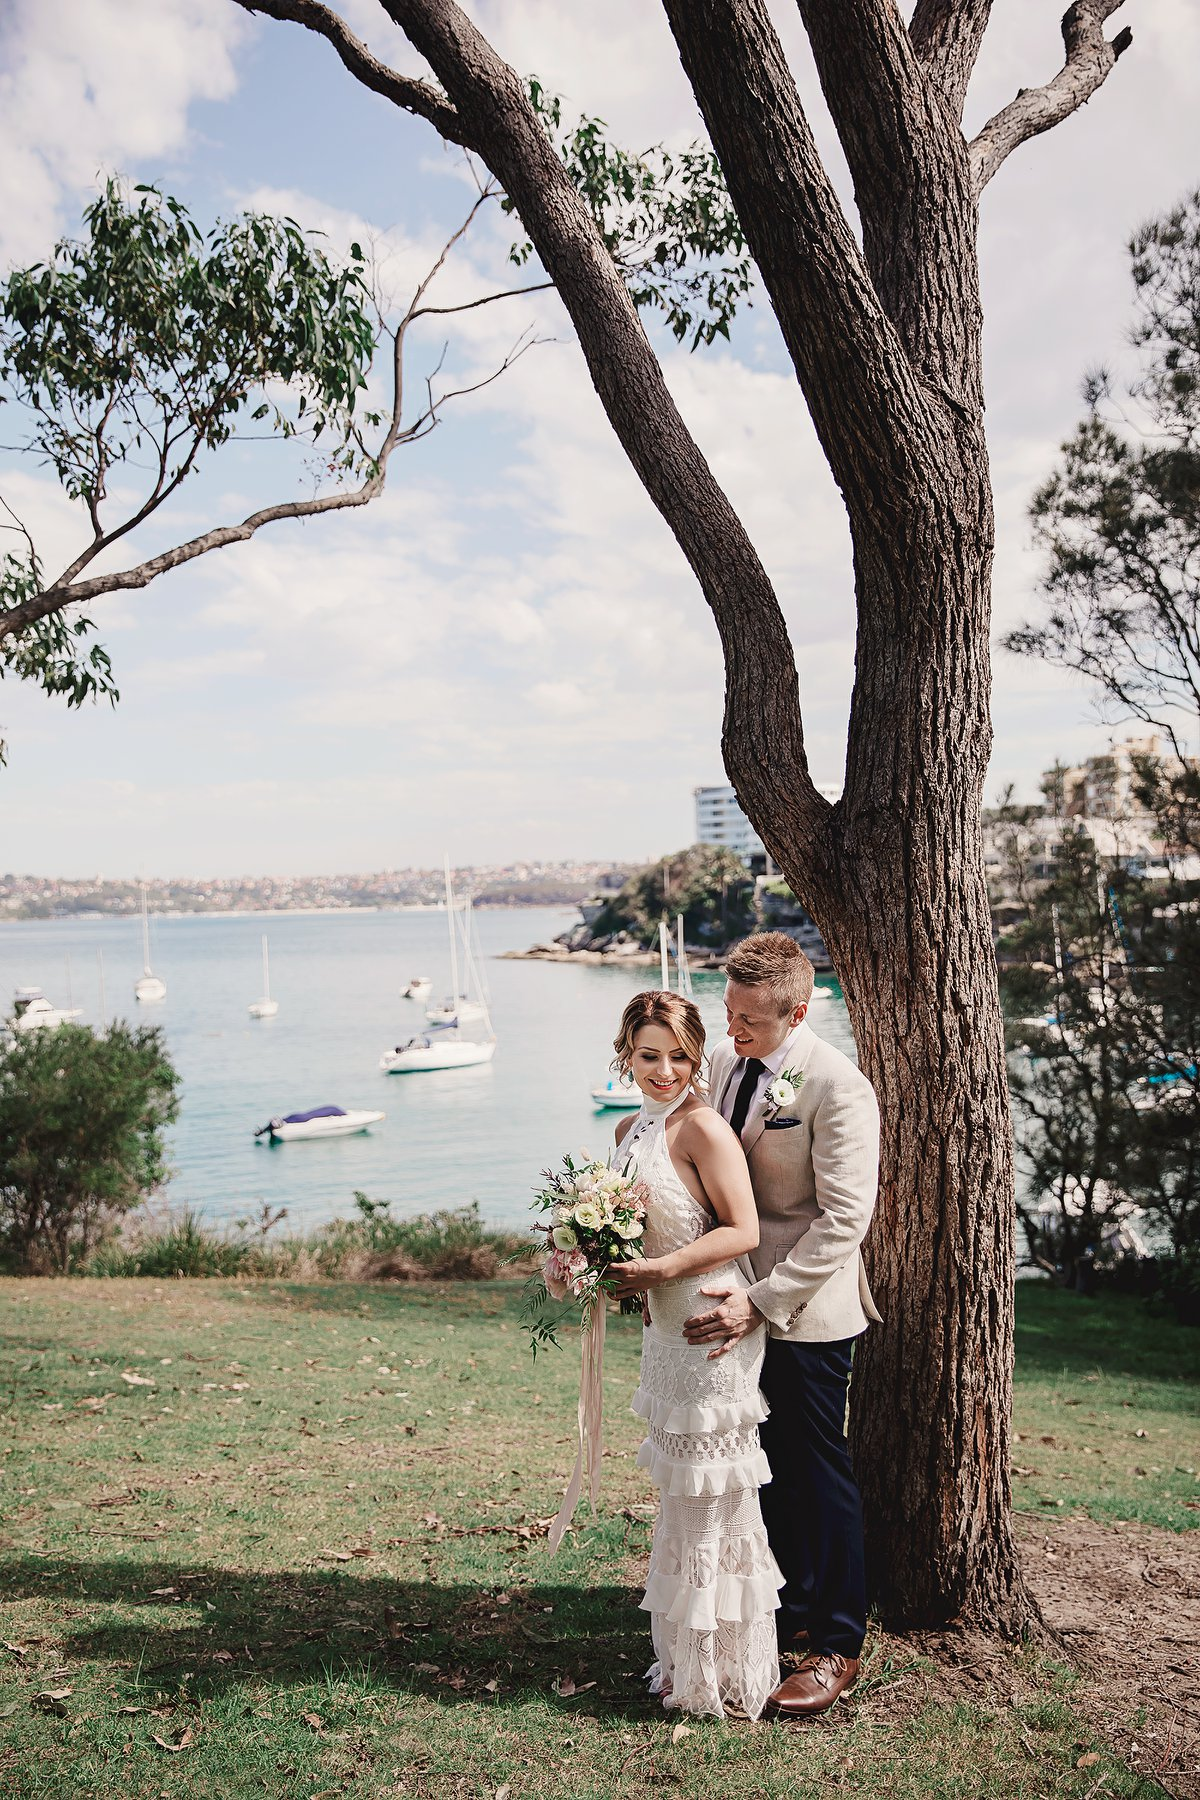 Wedding Day at Little Manly Point Rhys and Stacie.jpg